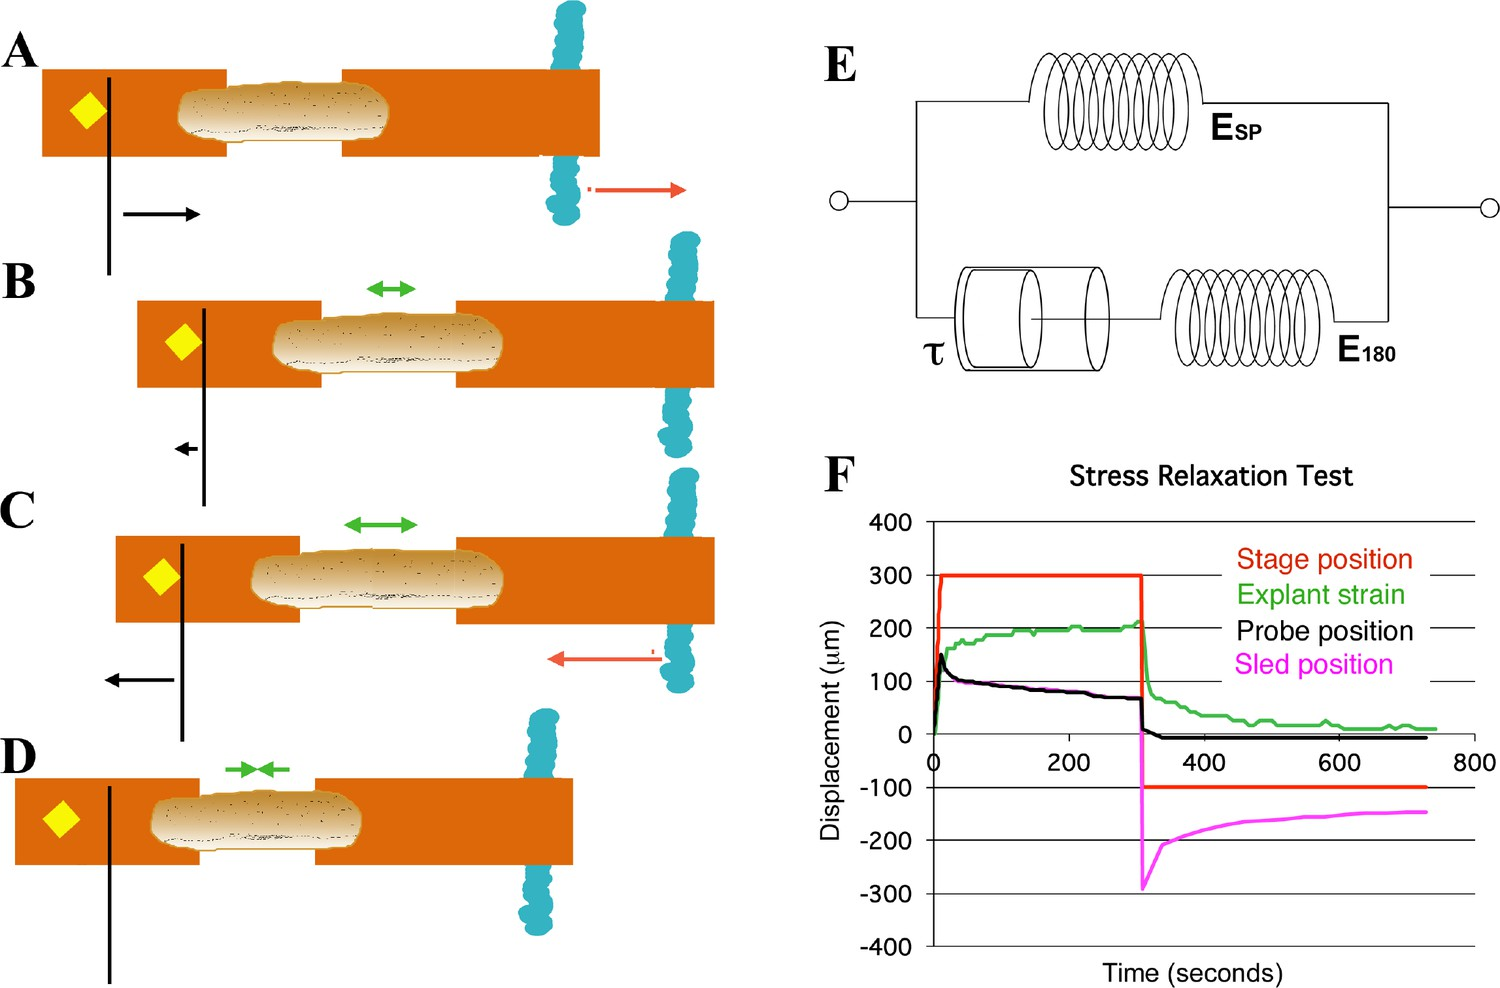 Large Long Range Tensile Forces Drive Convergence During Xenopus Bcs 460 Wiring Diagram Schema Of Movements And Measures Involved In Stress Relaxation Test